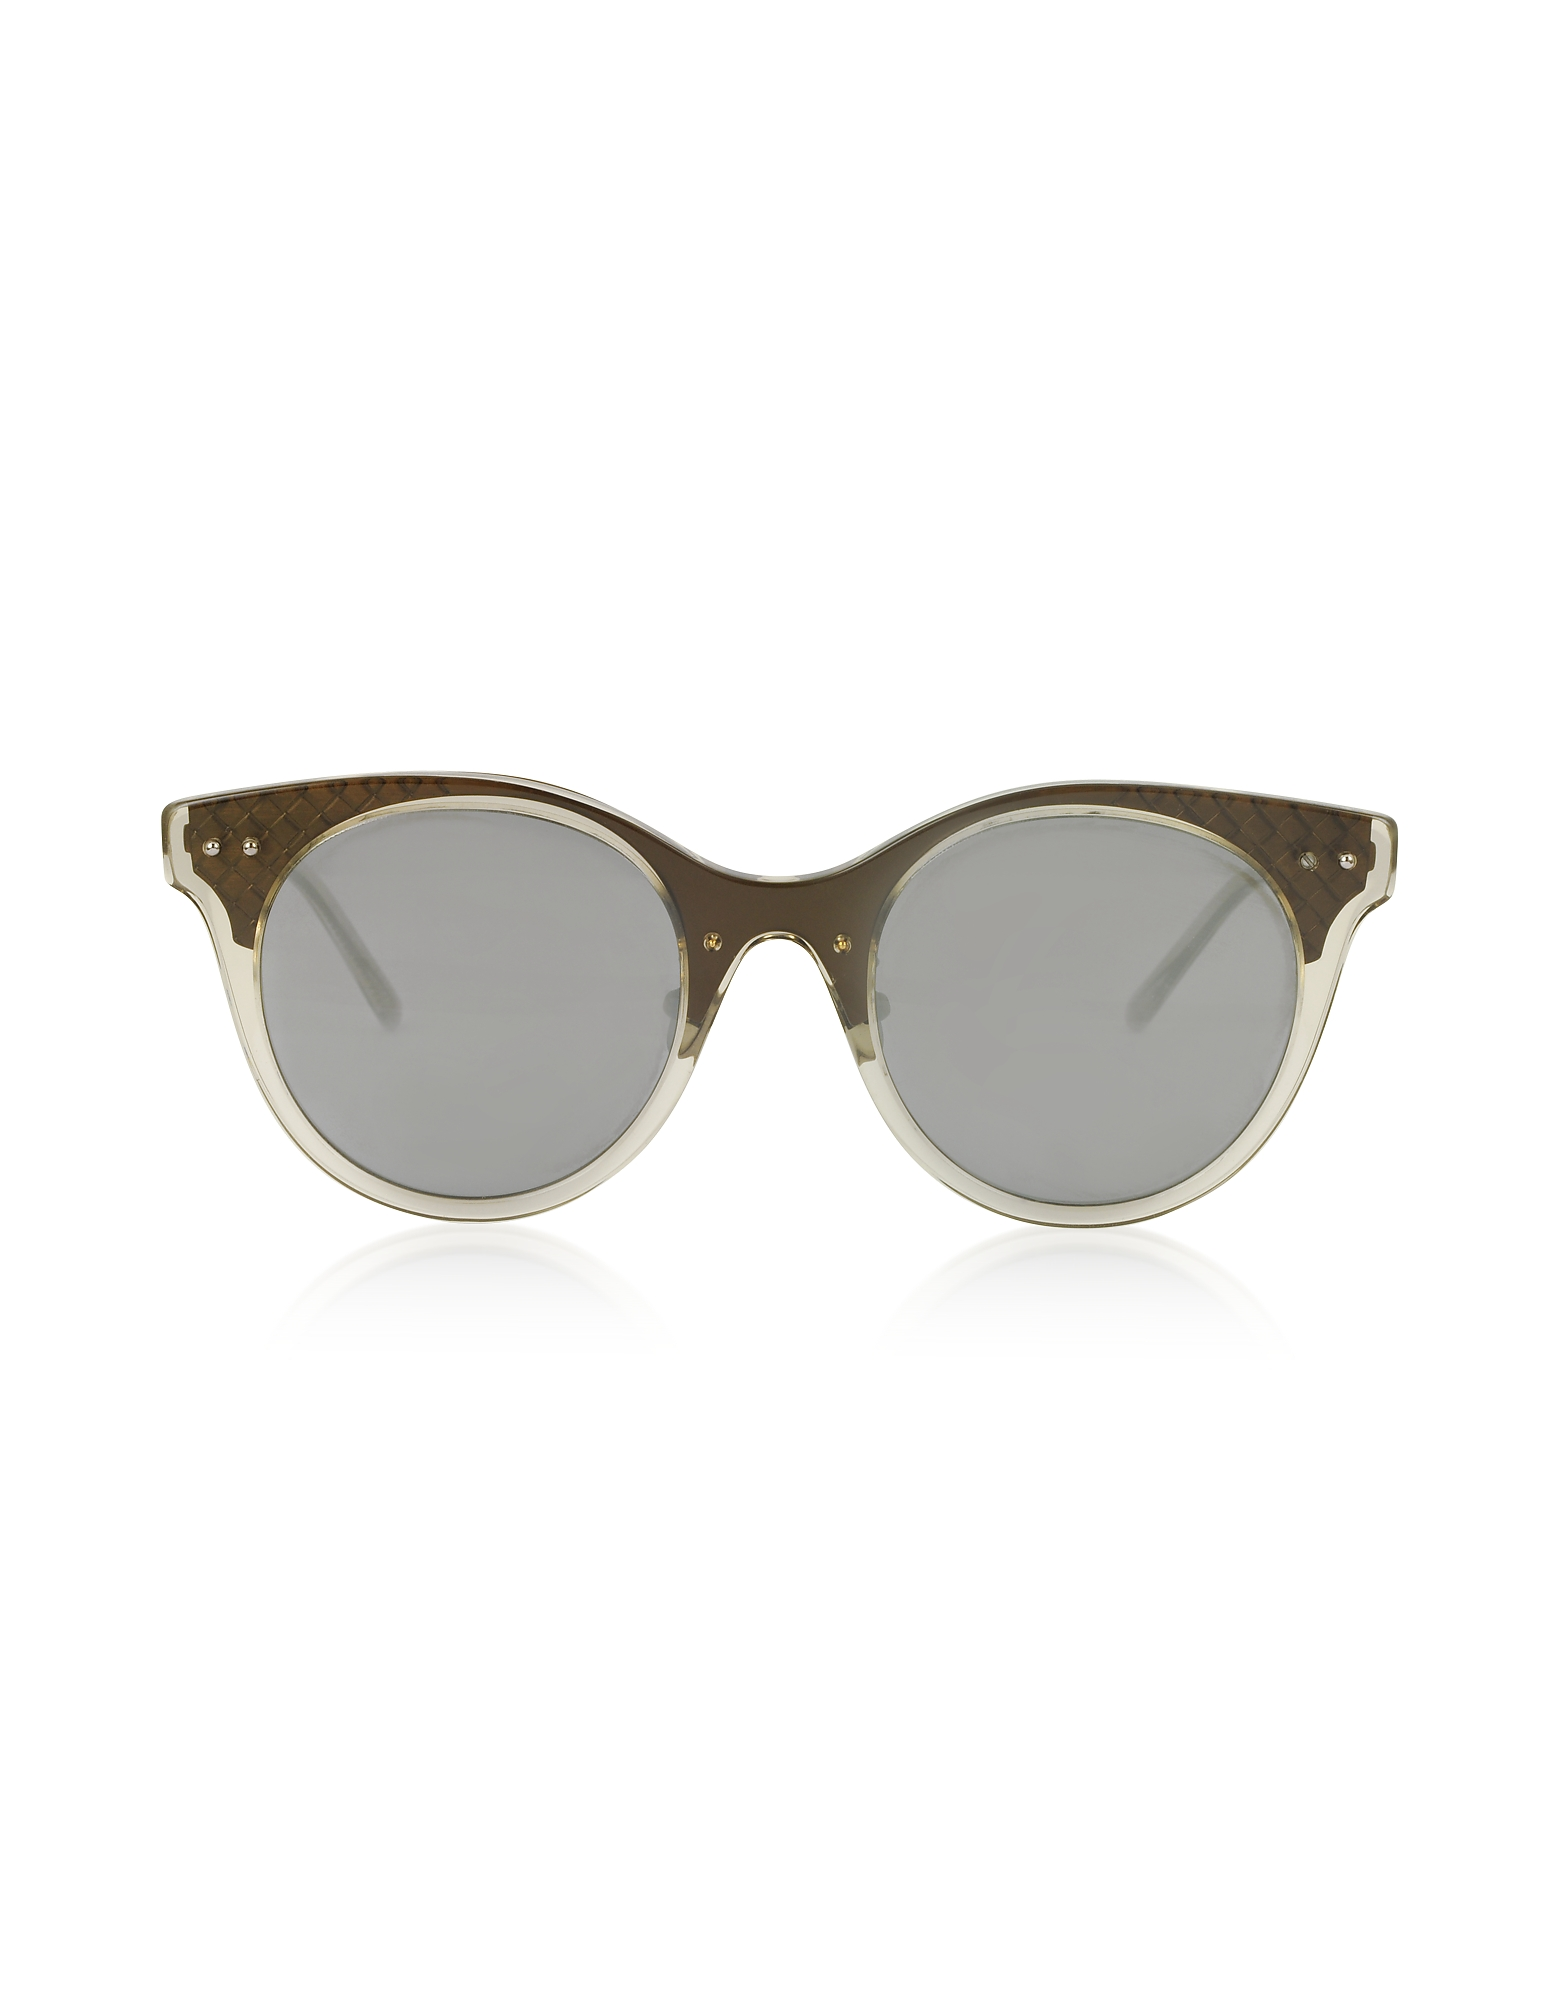 Bottega Veneta Sunglasses, BV0143S 003 Transparent Acetate and Bronze Metal Women's Sunglasses